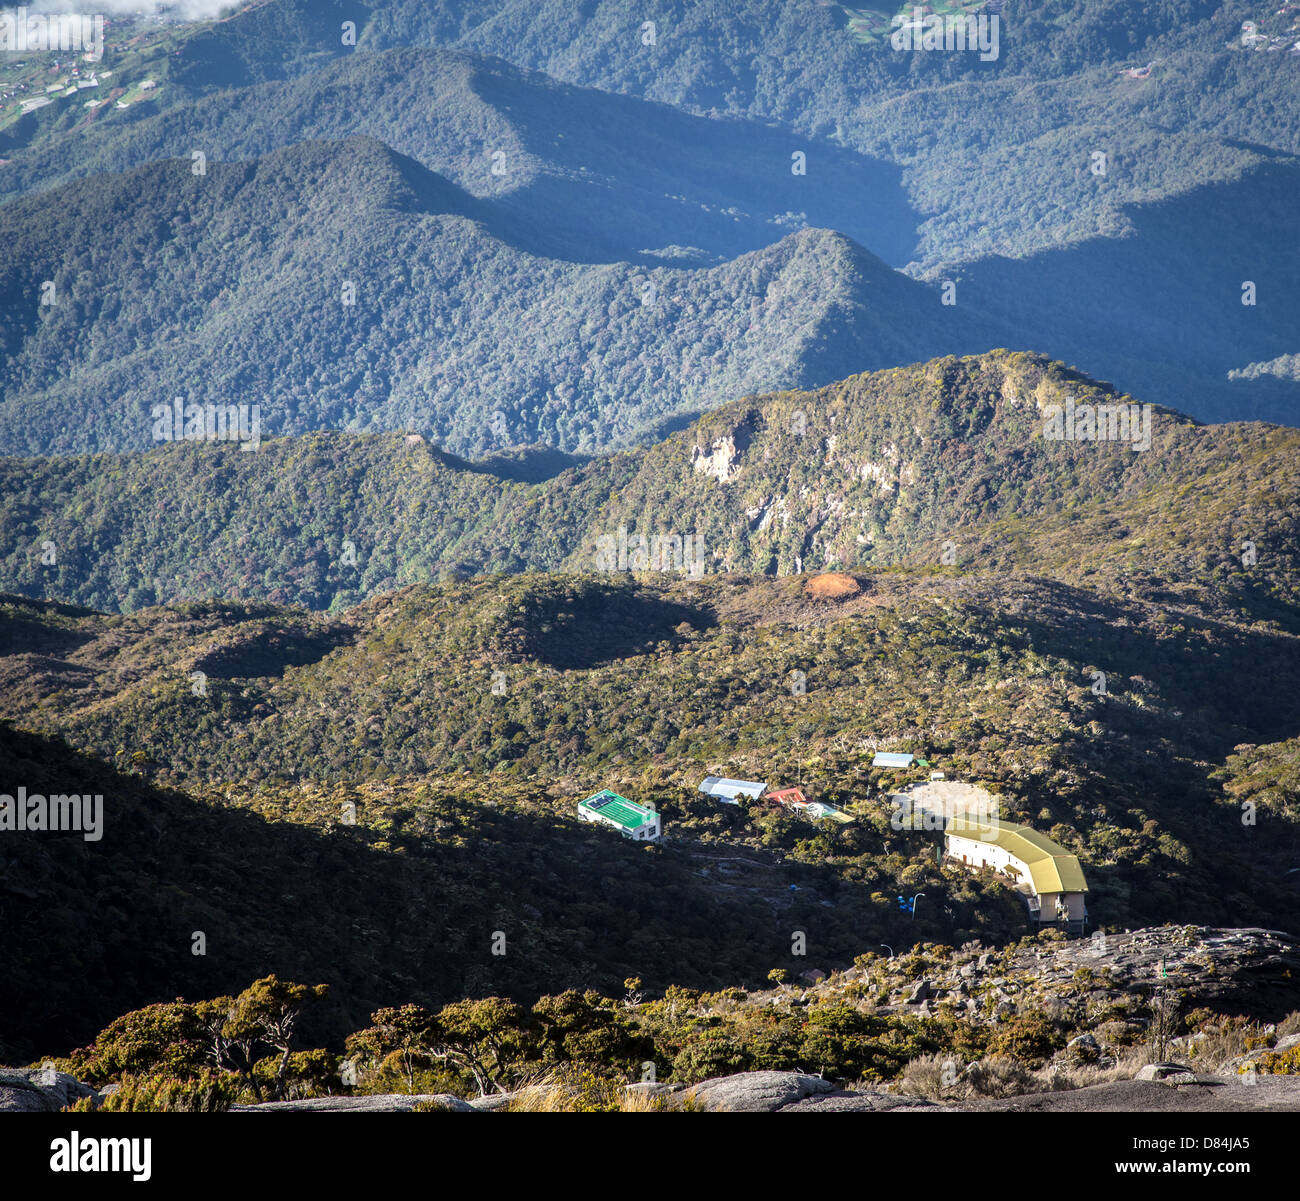 Laban Rata hostel seen from the lower summit area of Mount Kinabalu in Sabah Borneo - Stock Image